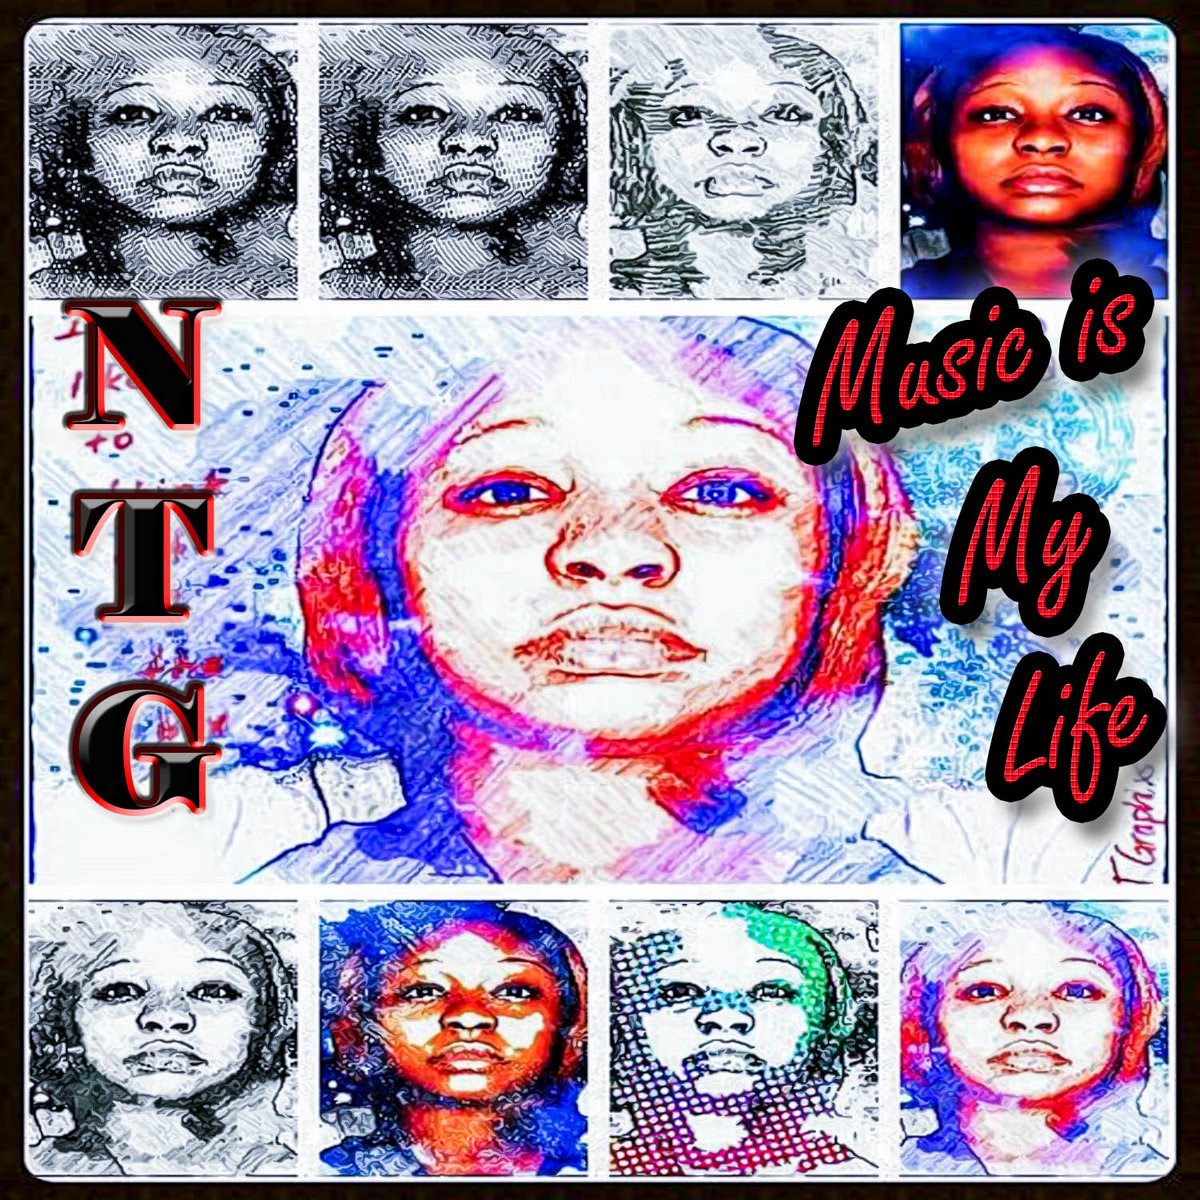 https://ntgmceeyungdraw.bandcamp.com/album/ntg-music-is-my-life